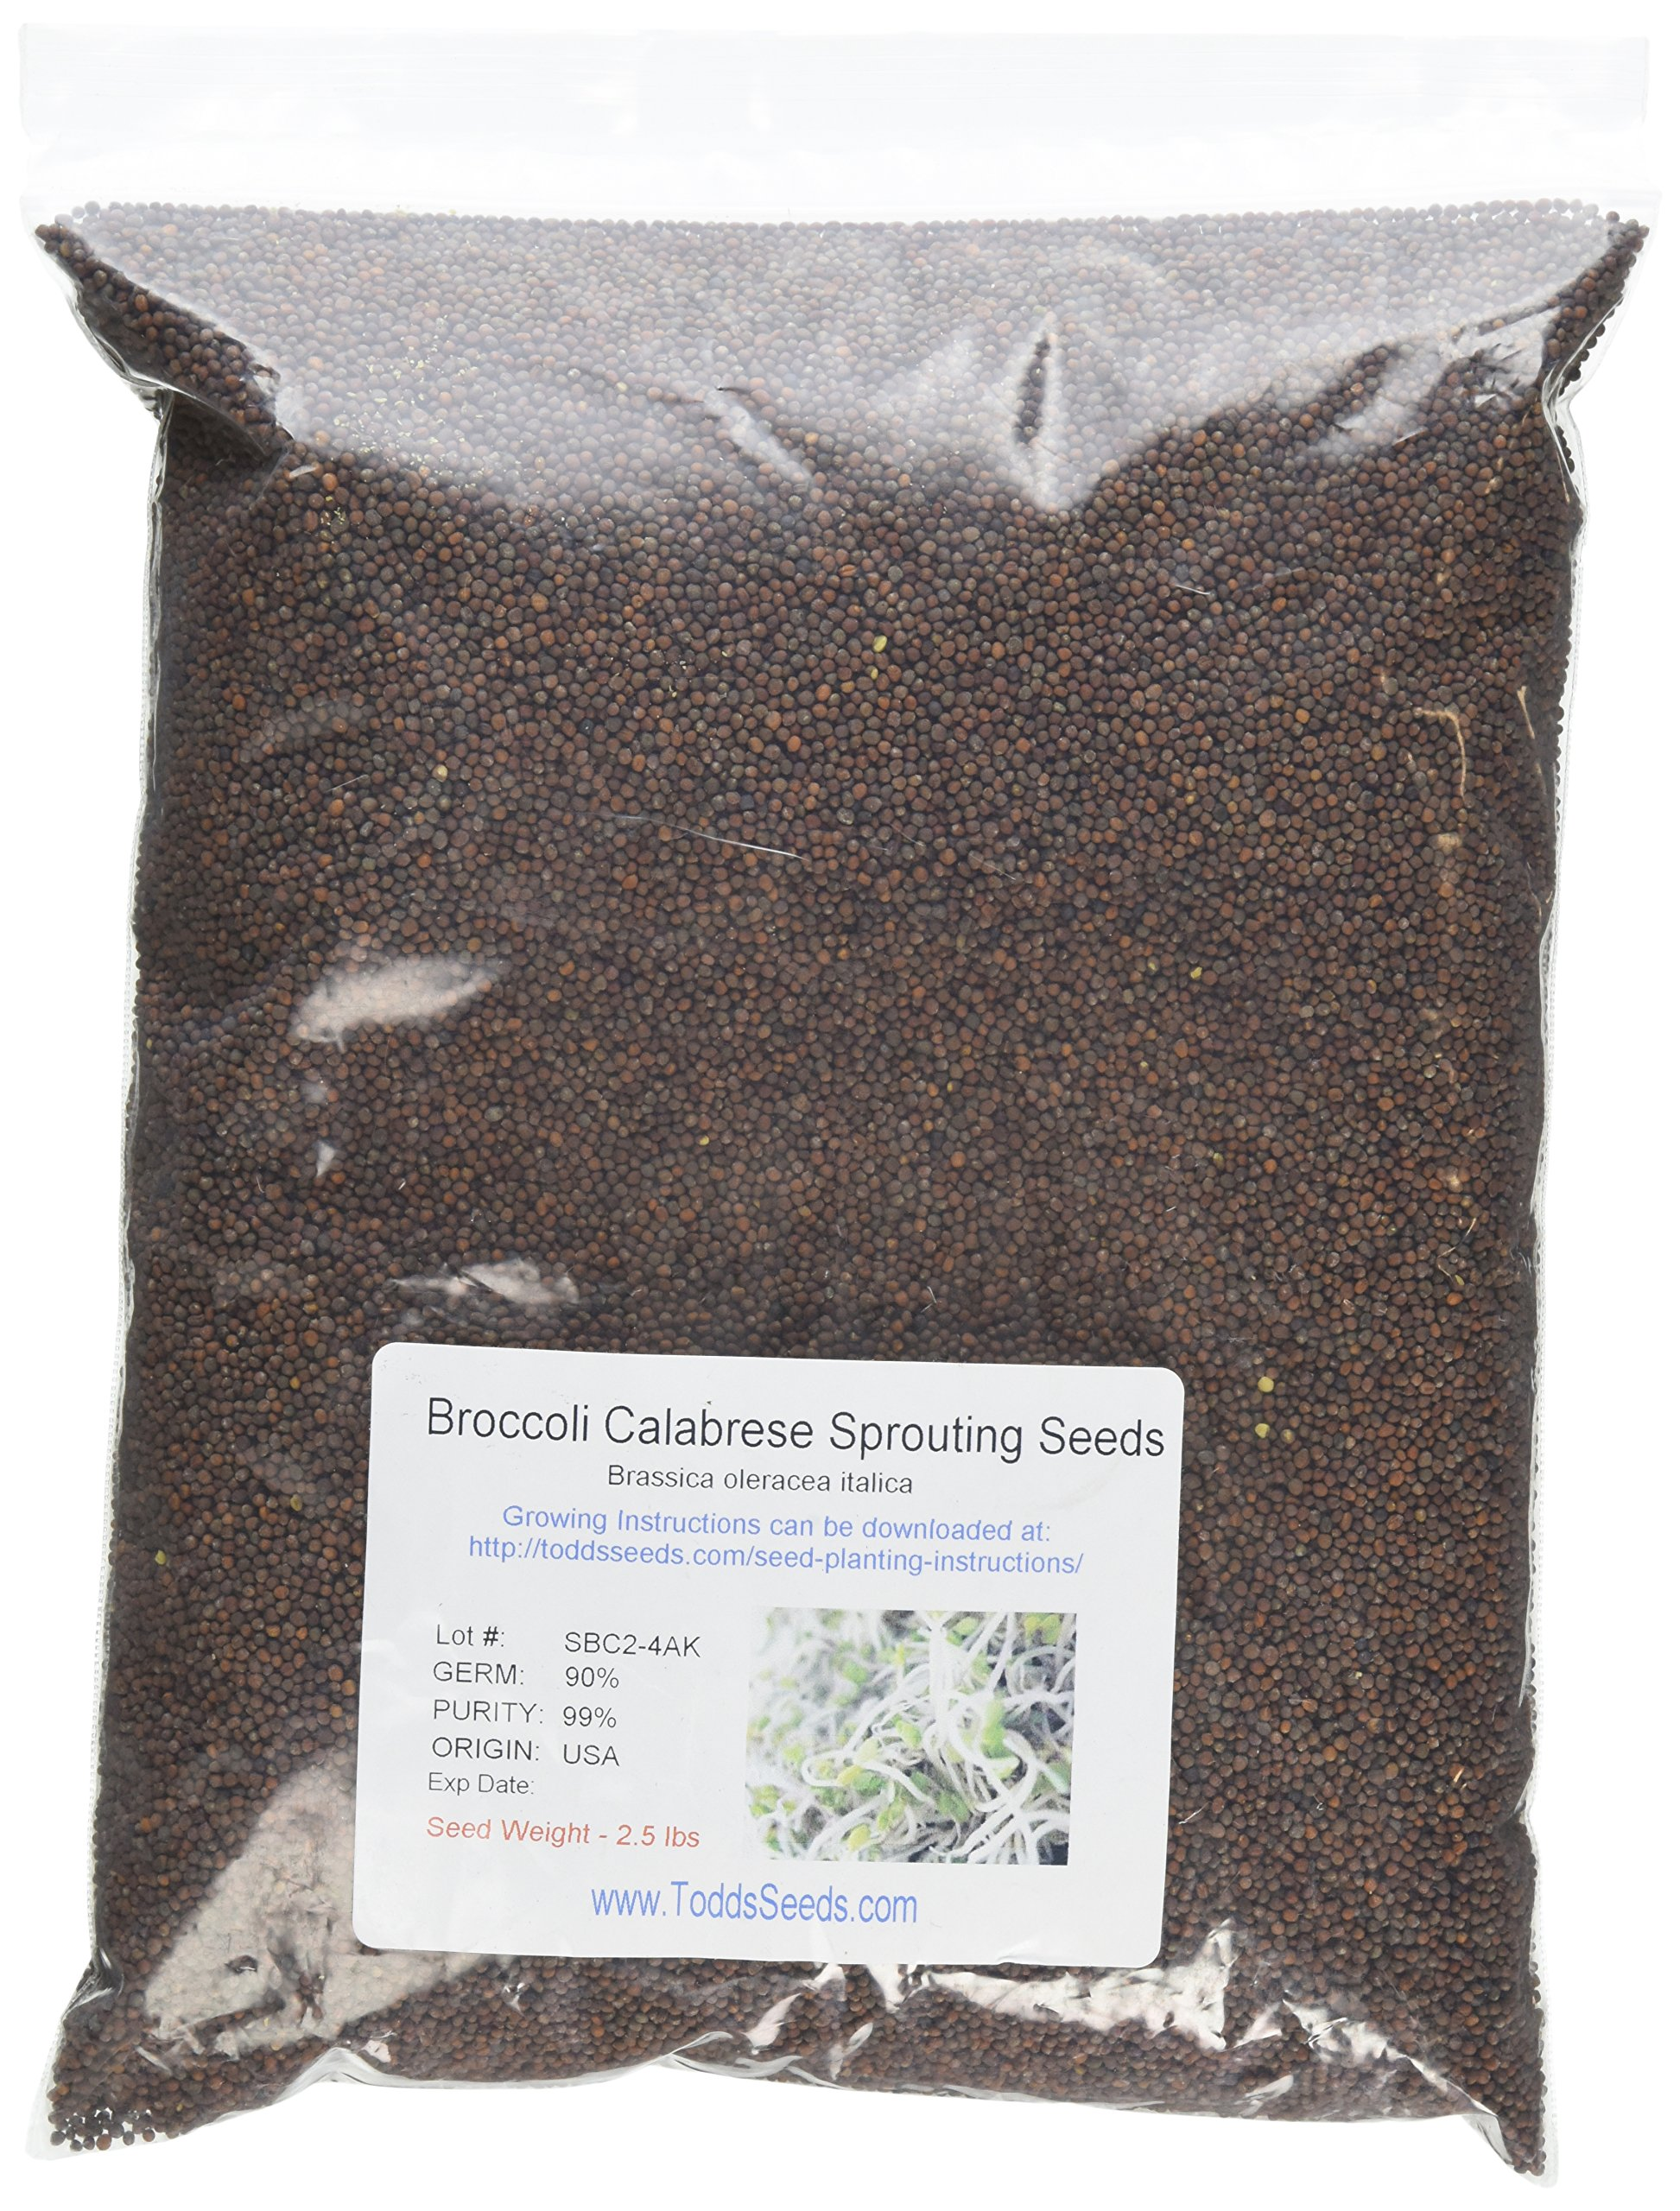 Broccoli Sprouting Seeds- Todd's Seeds Brand - 2.5 Lbs of Broccoli Seeds - Sprouting Sprouts, Chemical Free Sprouts & Food Storage- Brocolli Sprouts Contain the Most Sulforaphane by Todd's Seeds